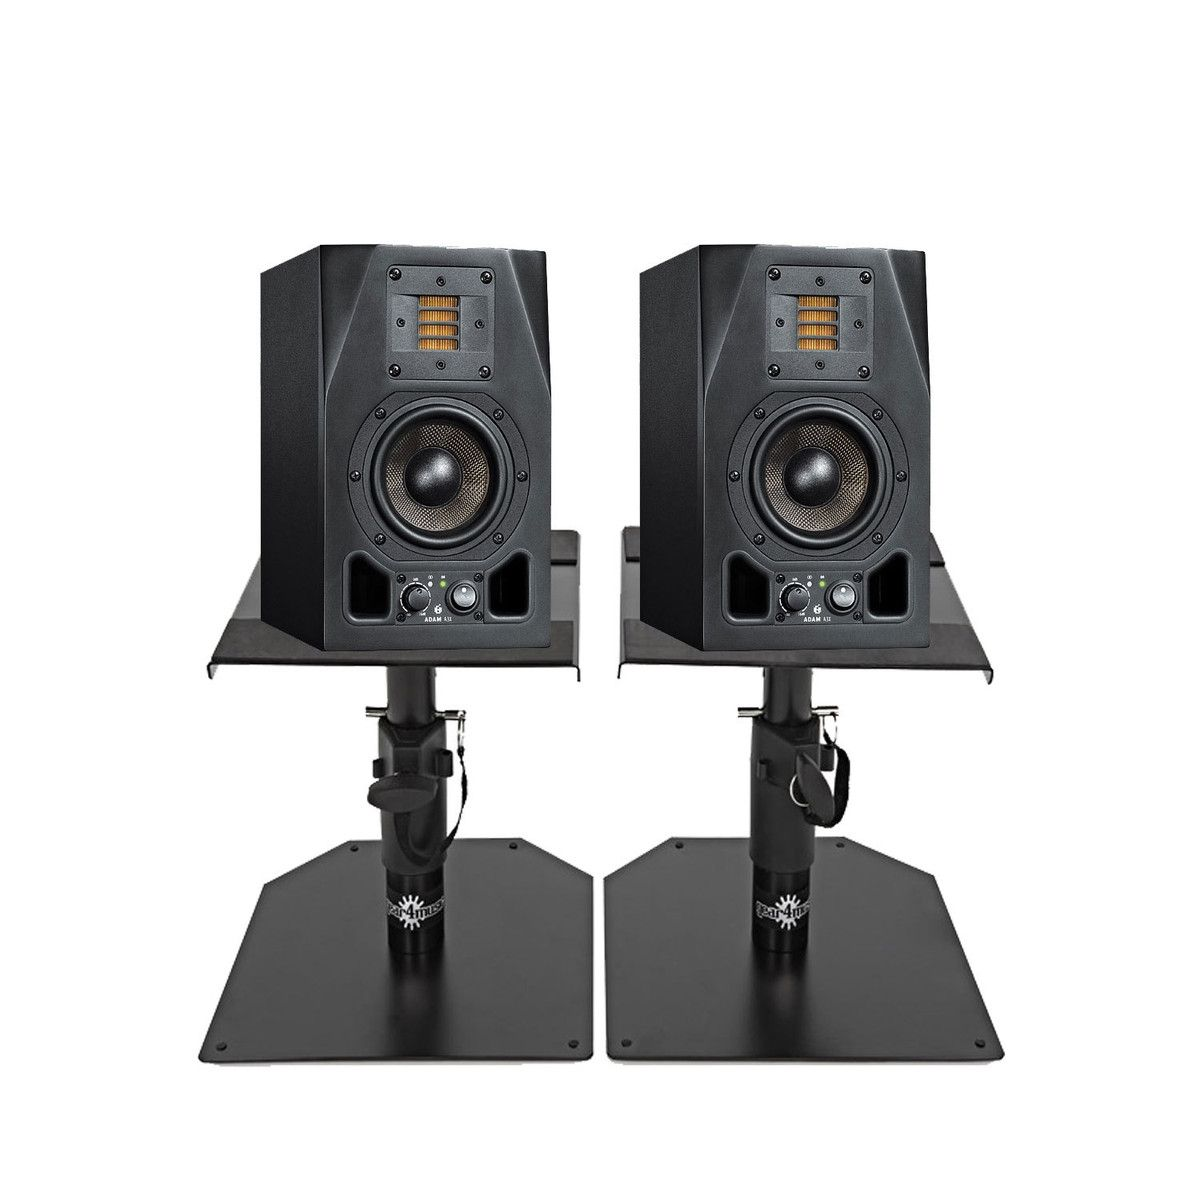 Best Gorilla Gsm 50 Desktop Studio Monitor Stands Pair Throughout Size 1000 X Desk With Many Tasks In The Cur Market Requi